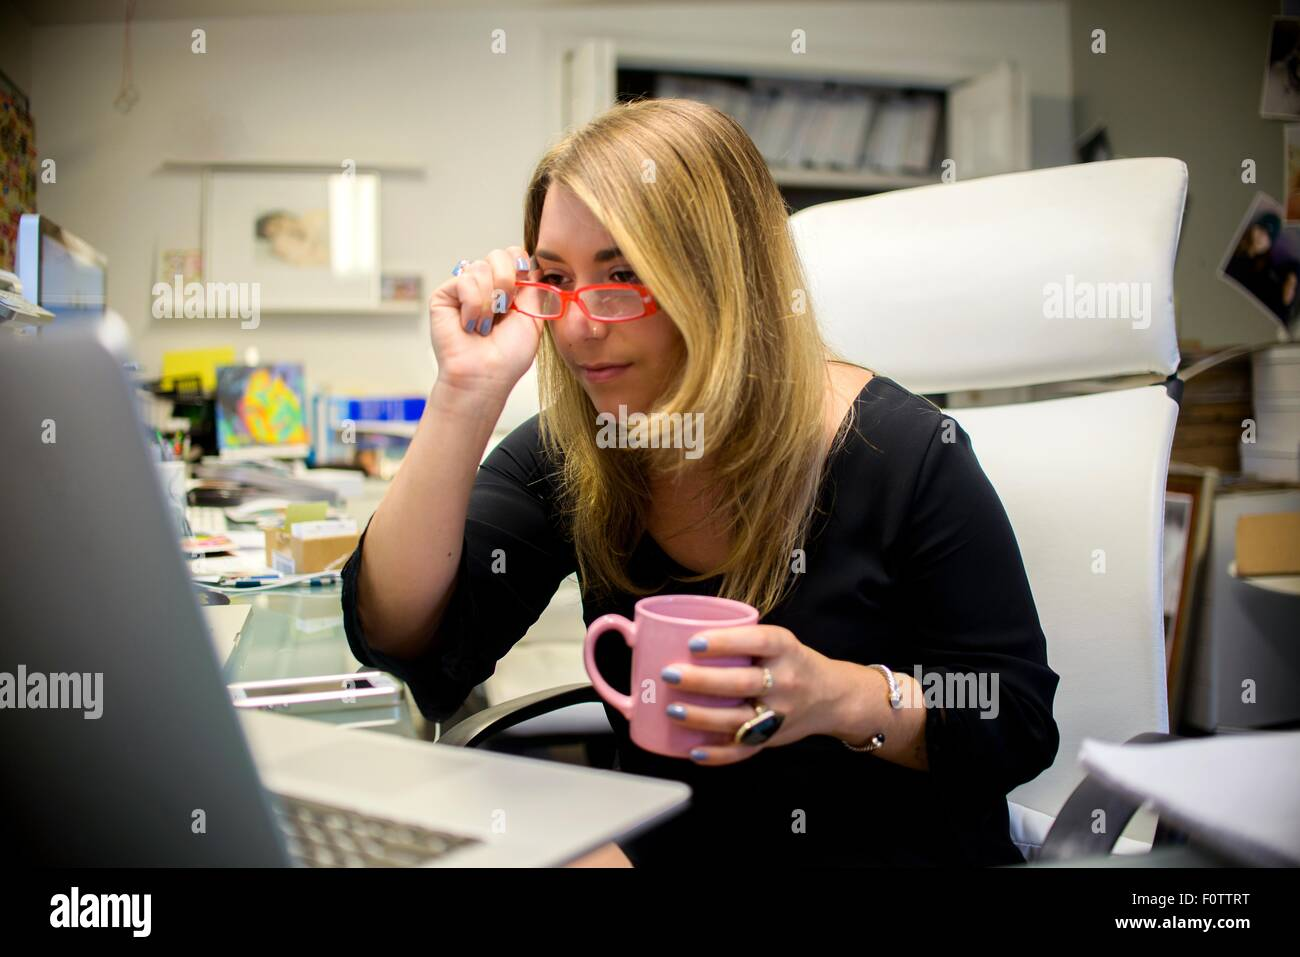 Young woman in office, sitting at desk, holding coffee cup, putting on glasses - Stock Image